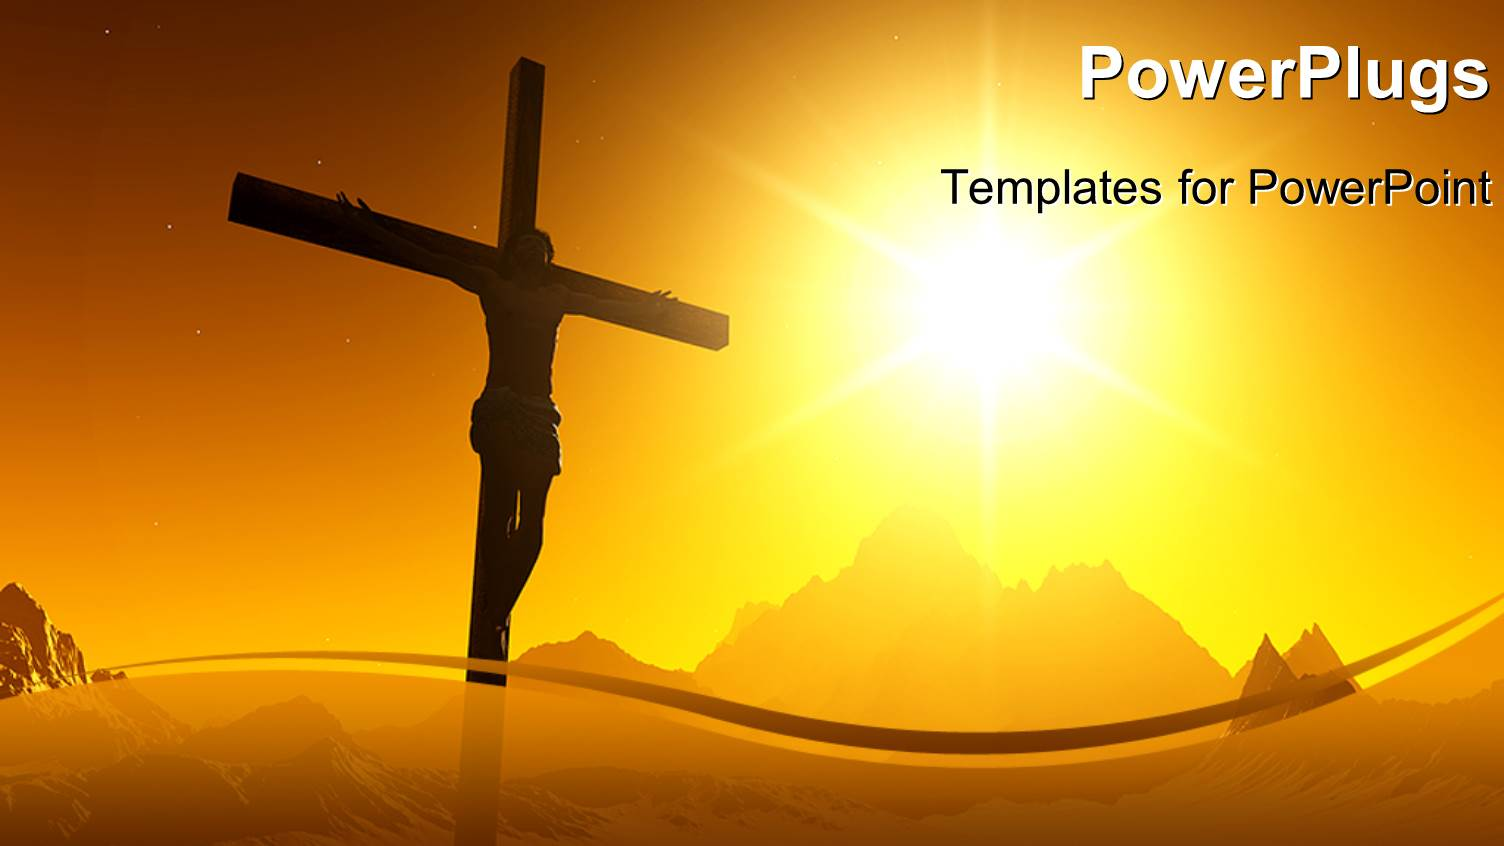 5000 christ powerpoint templates w christ themed backgrounds colorful ppt theme having a sunset view of a cross with jesus christ toneelgroepblik Image collections